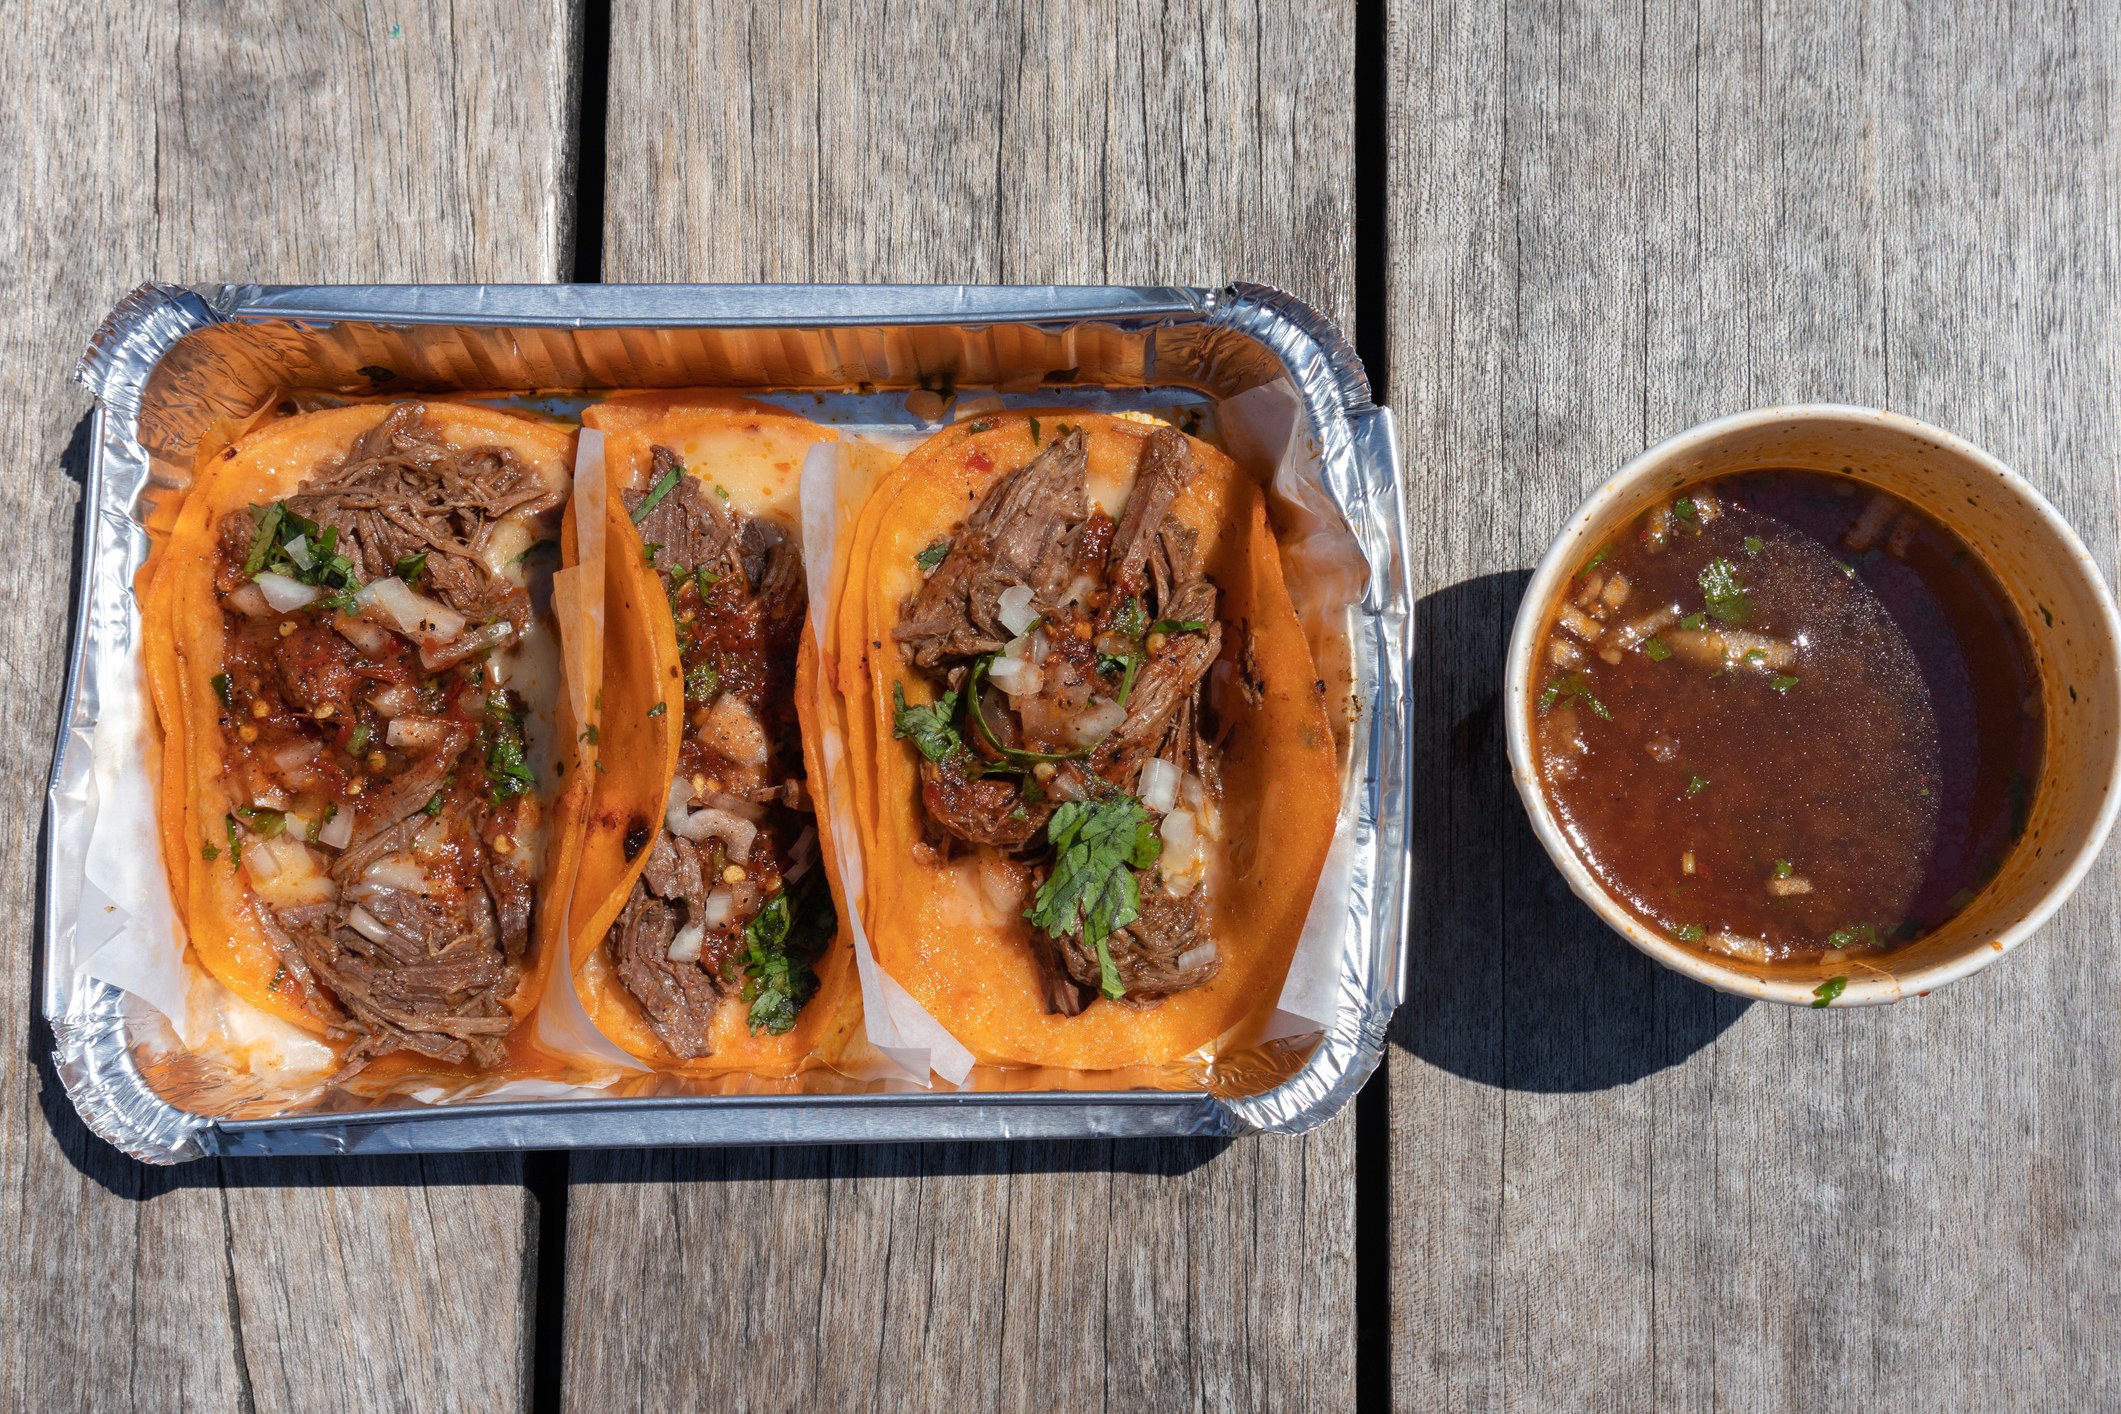 Mexican birria tacos and consomme.